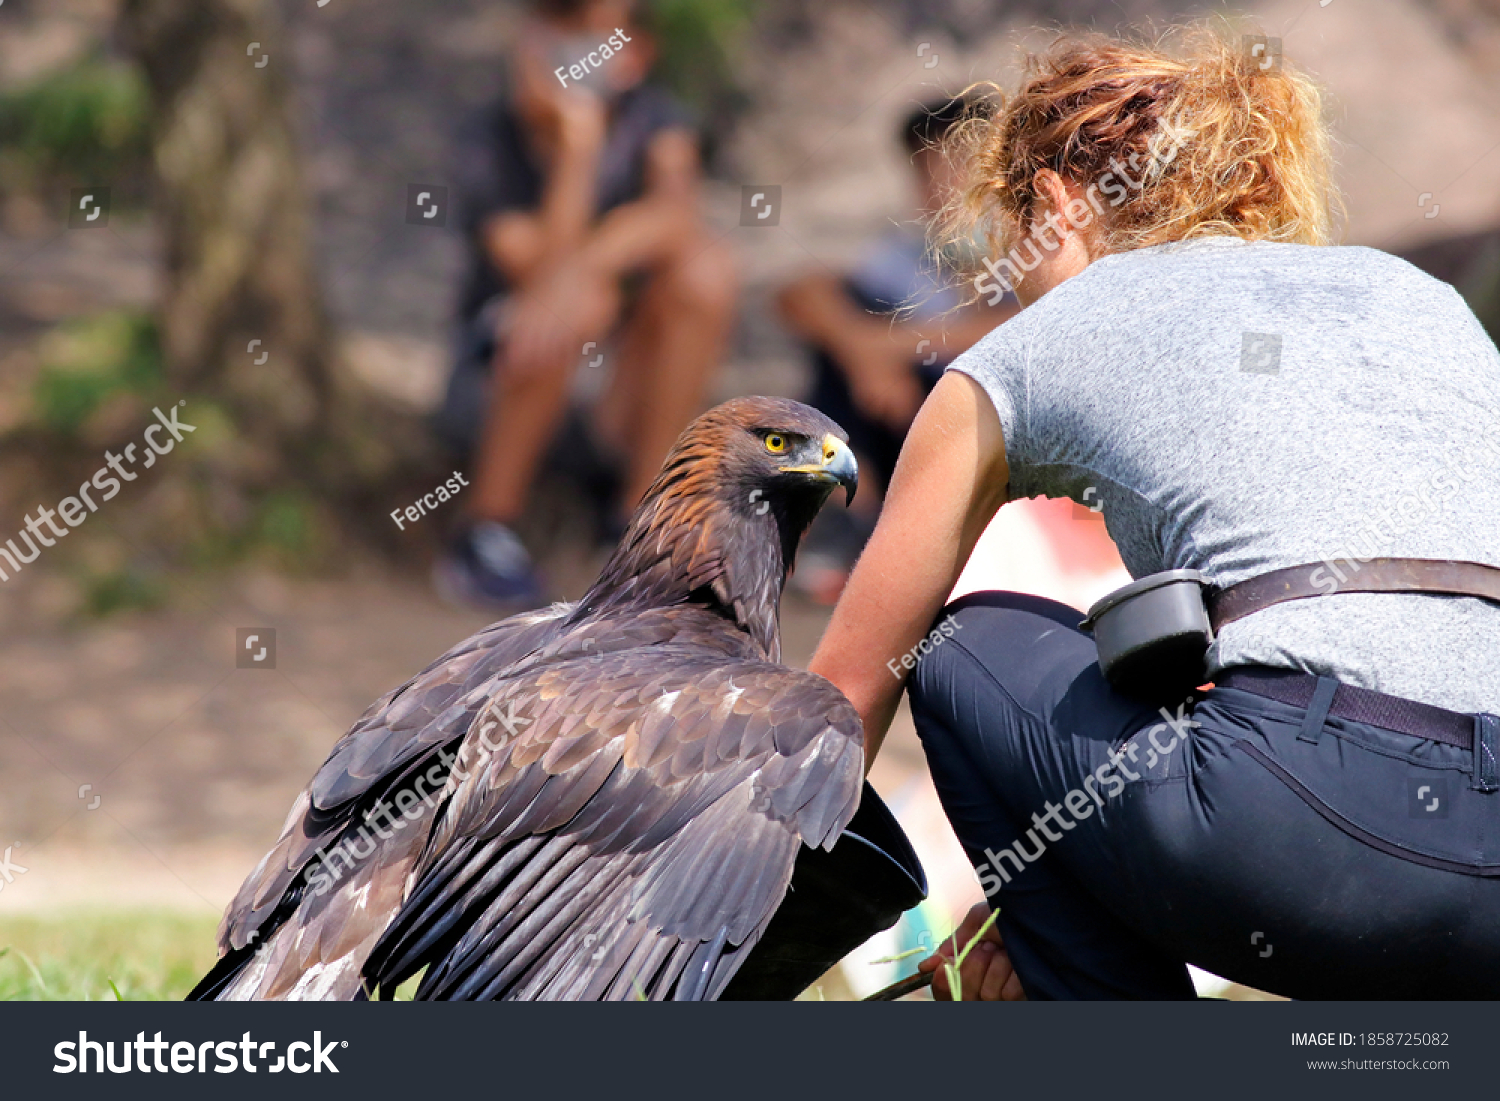 stock-photo-young-woman-holding-an-eagle